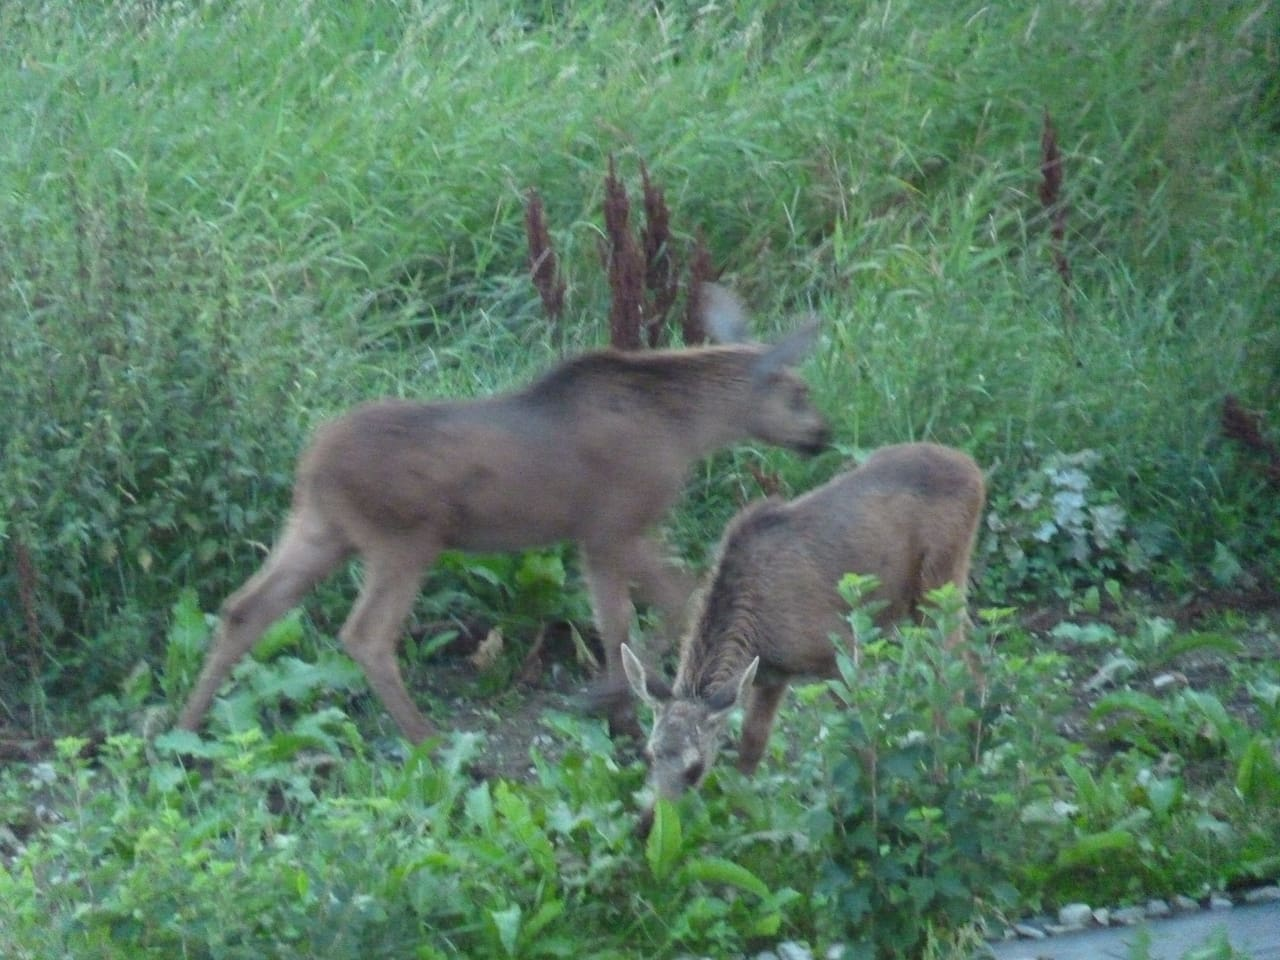 2 baby elg born last year in our garden.